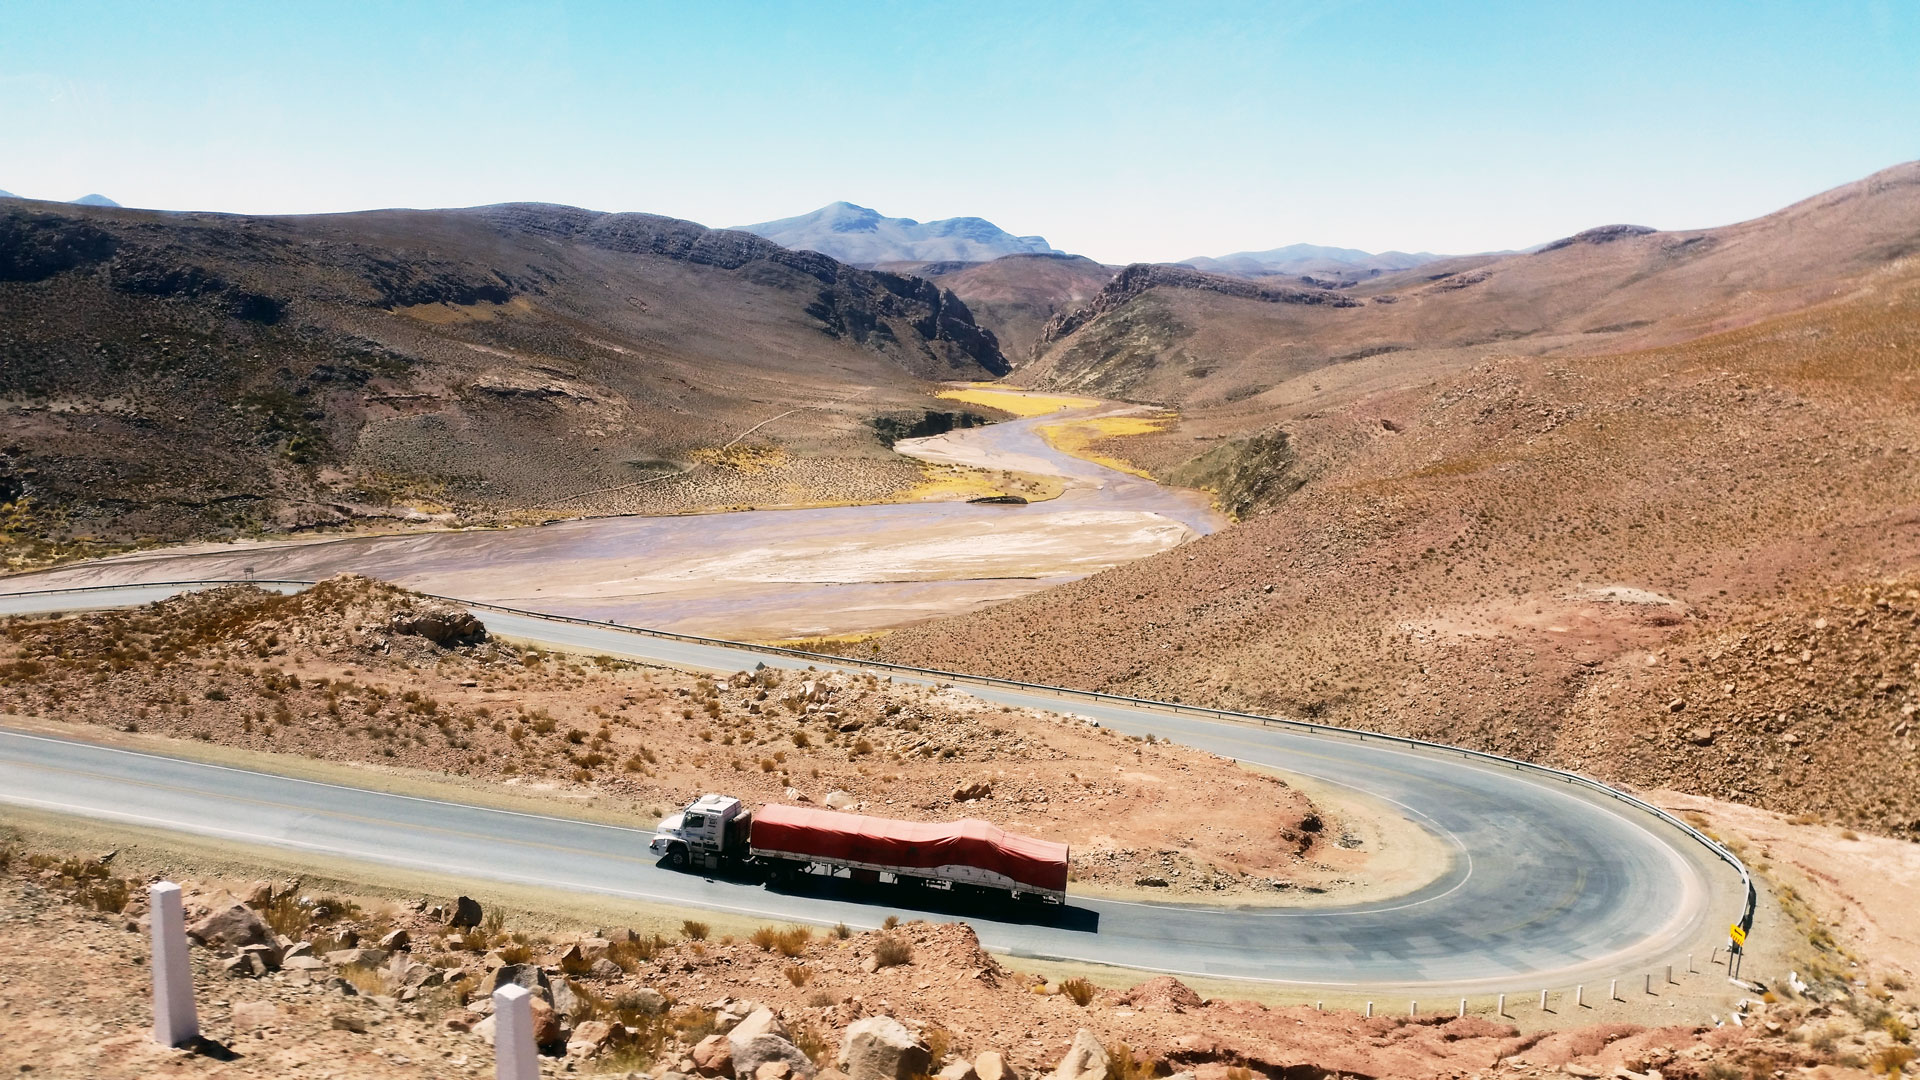 Getting closer to Paso Jama, situated at 4.400 meters, which is the favored border crossing for trucks and international buses to Chile. Photo by Ovidiu Balaj